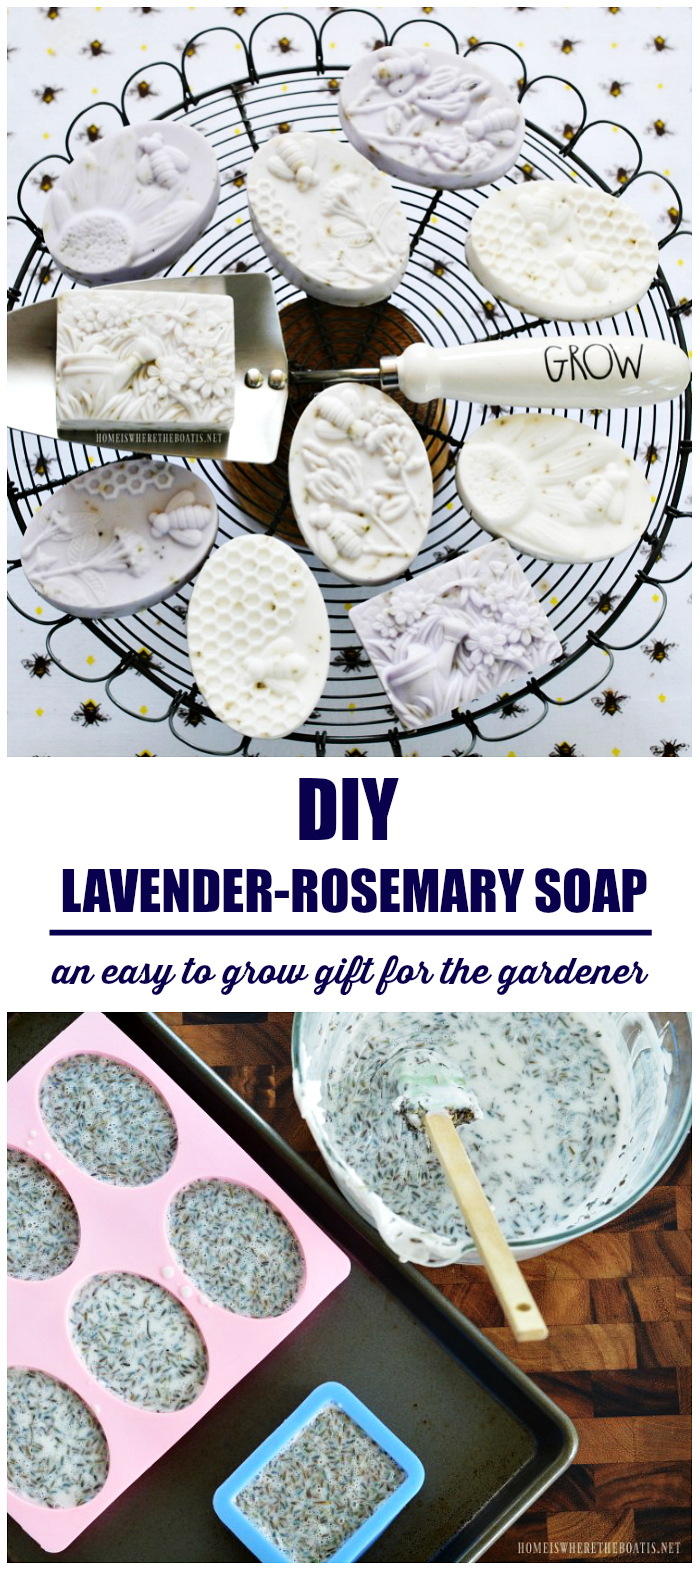 Easy DIY Lavender-Rosemary Soap | ©homeiswheretheboatis.net #DIY #bees #gifts